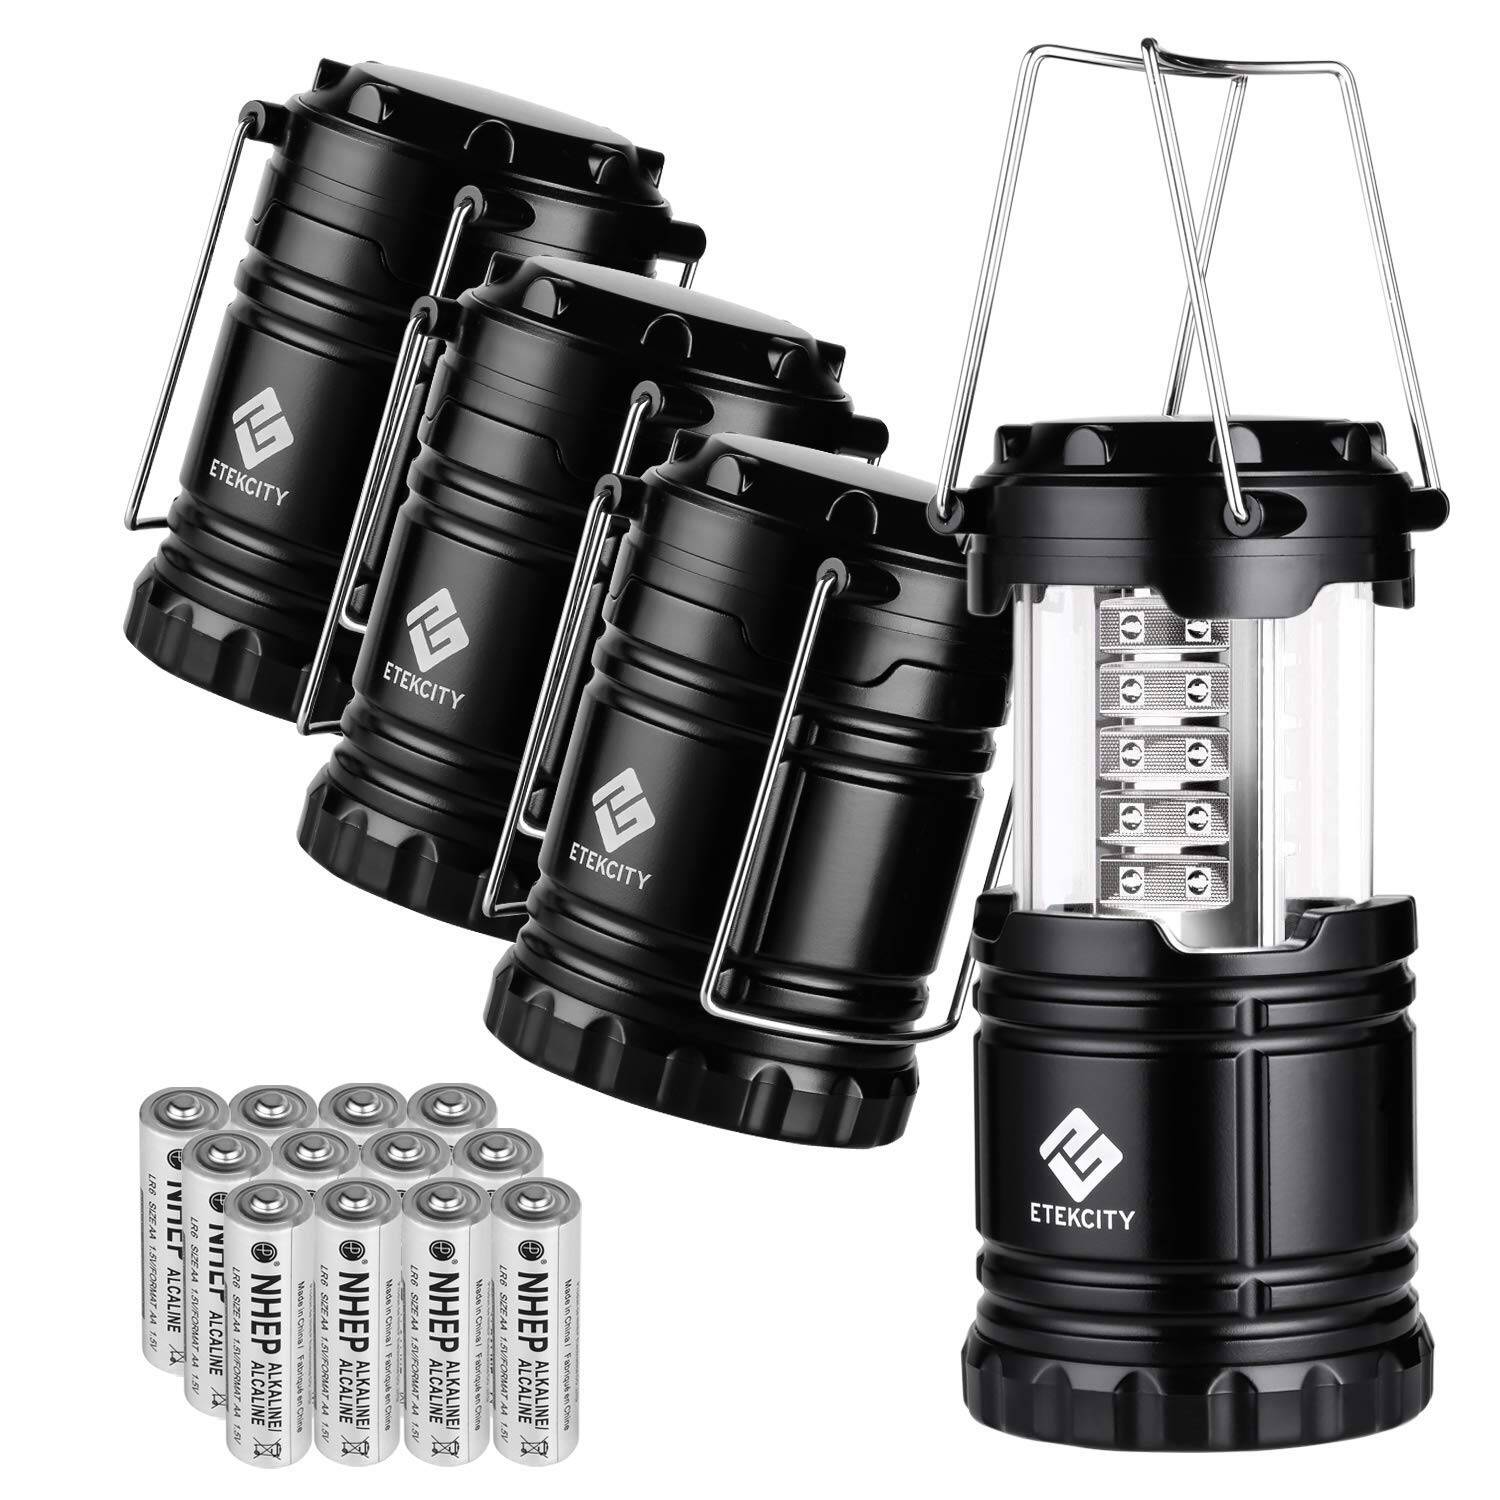 Etekcity 4 Pack Portable LED Camping Lantern